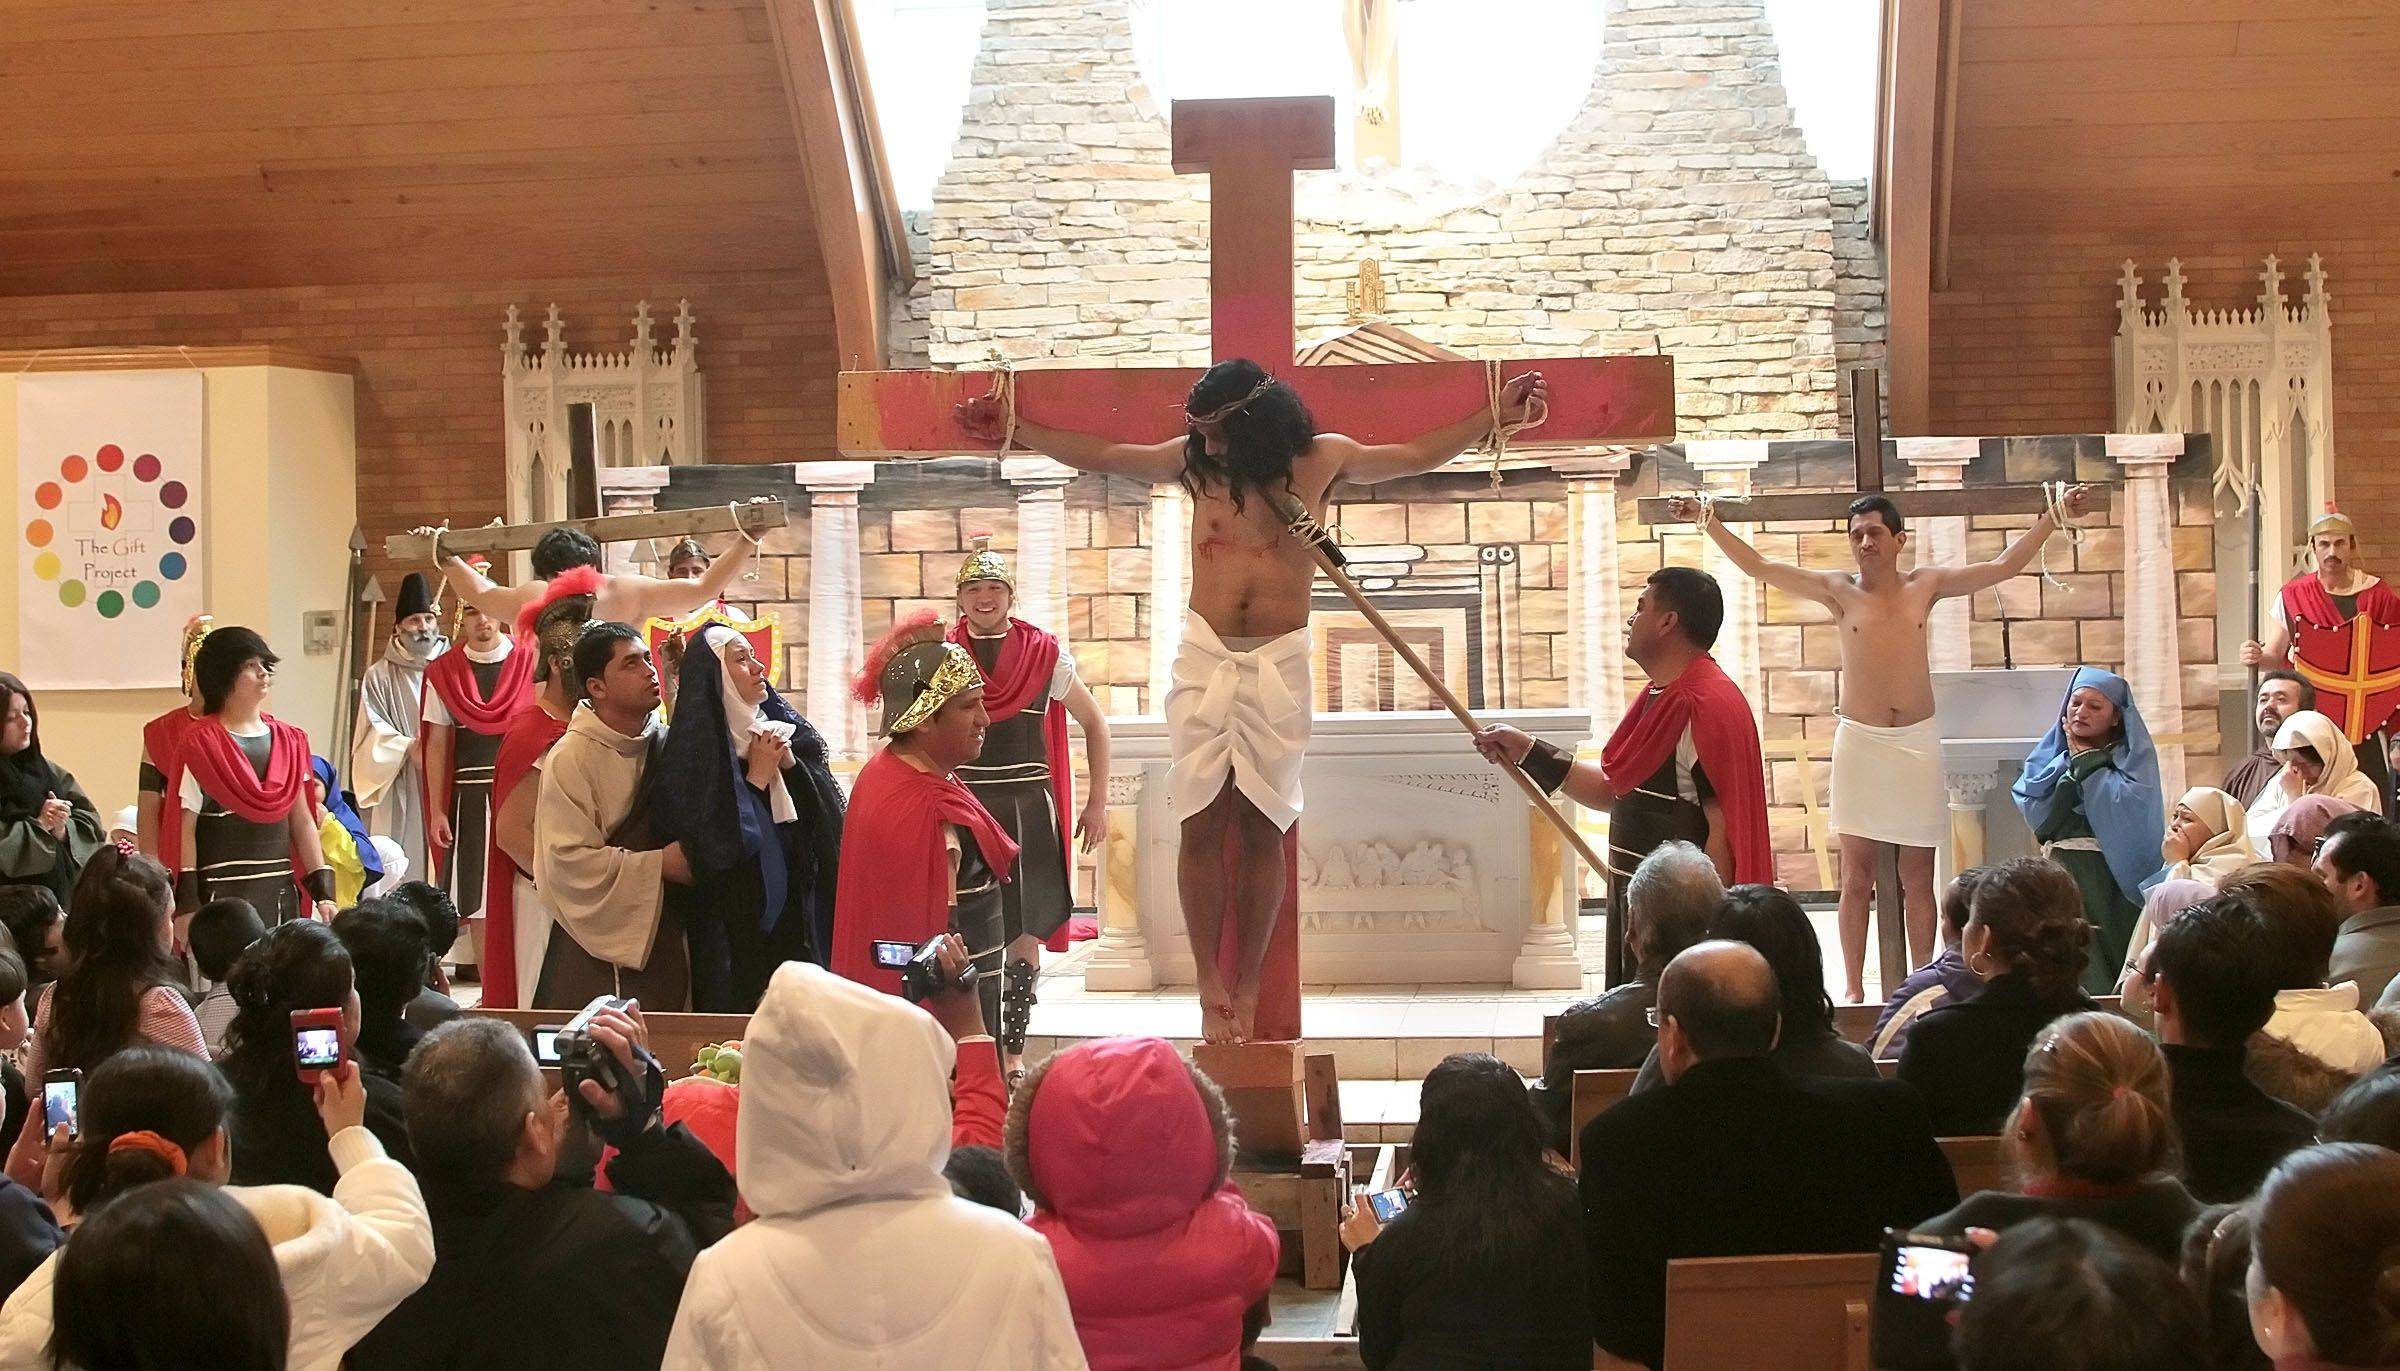 The parishioners of Most Blessed Trinity Parish in Waukegan held a Living Stations of the Cross for Good Friday.